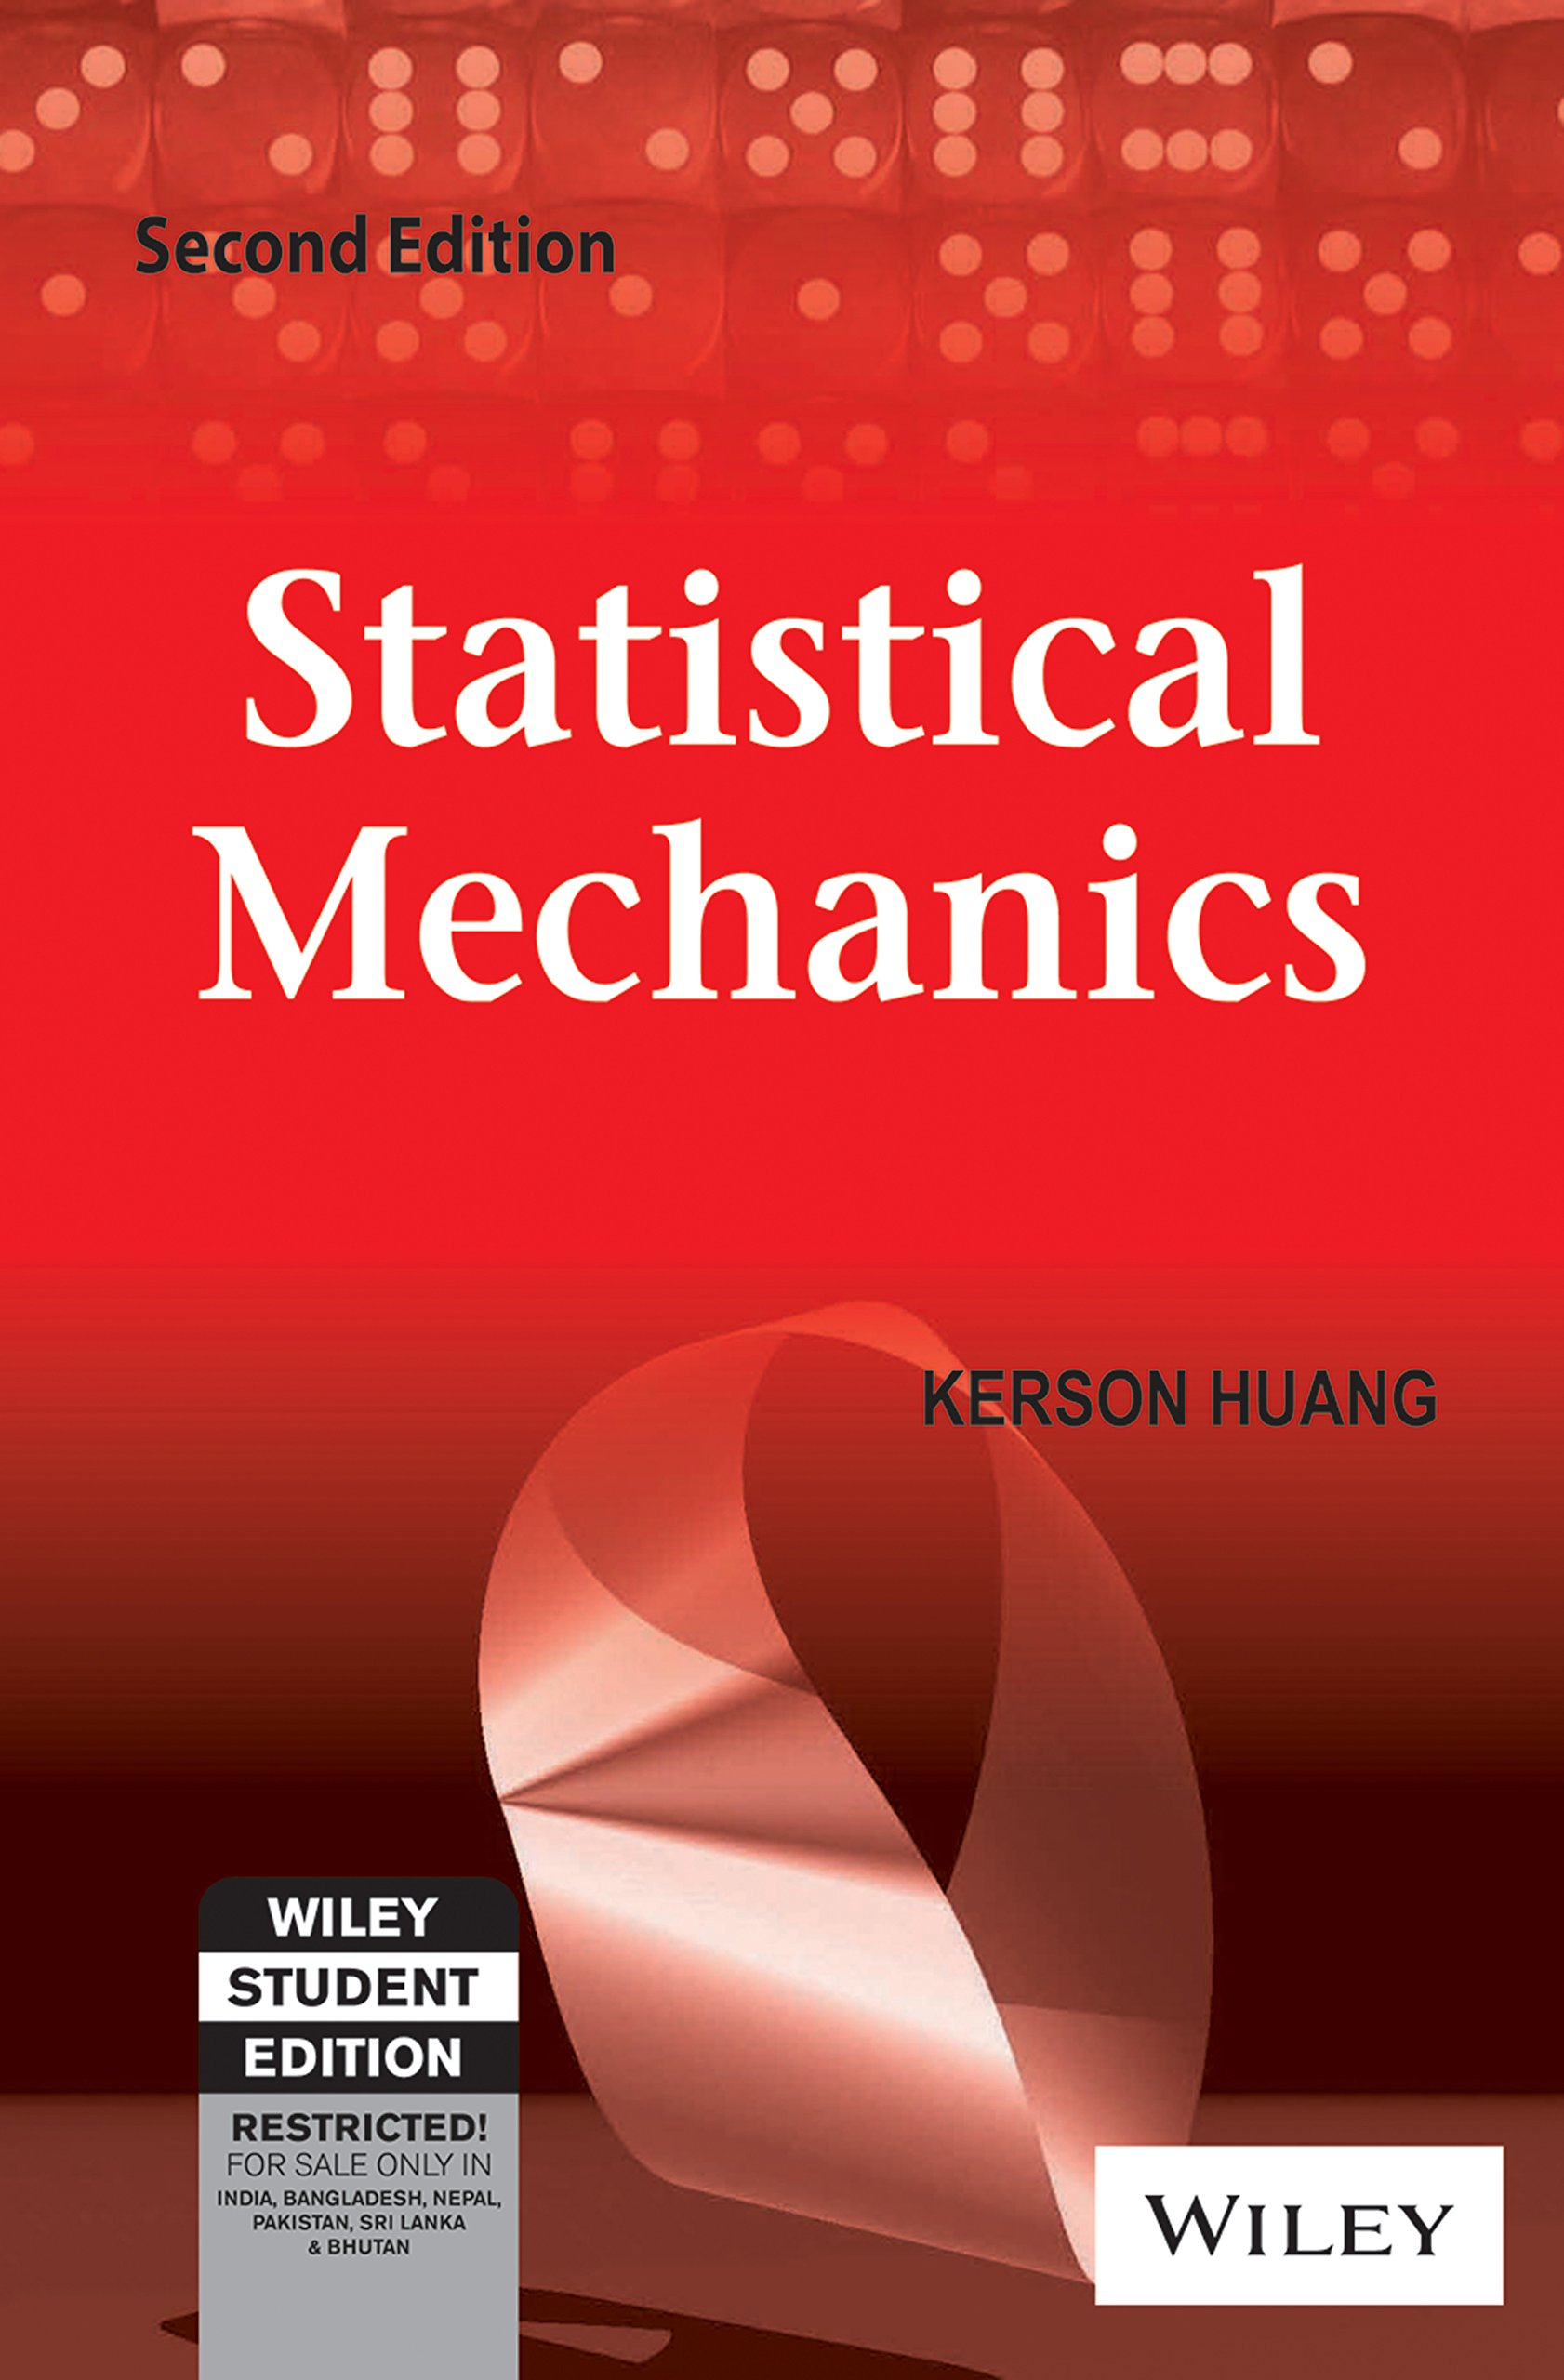 statistical mechanics kerson huang books